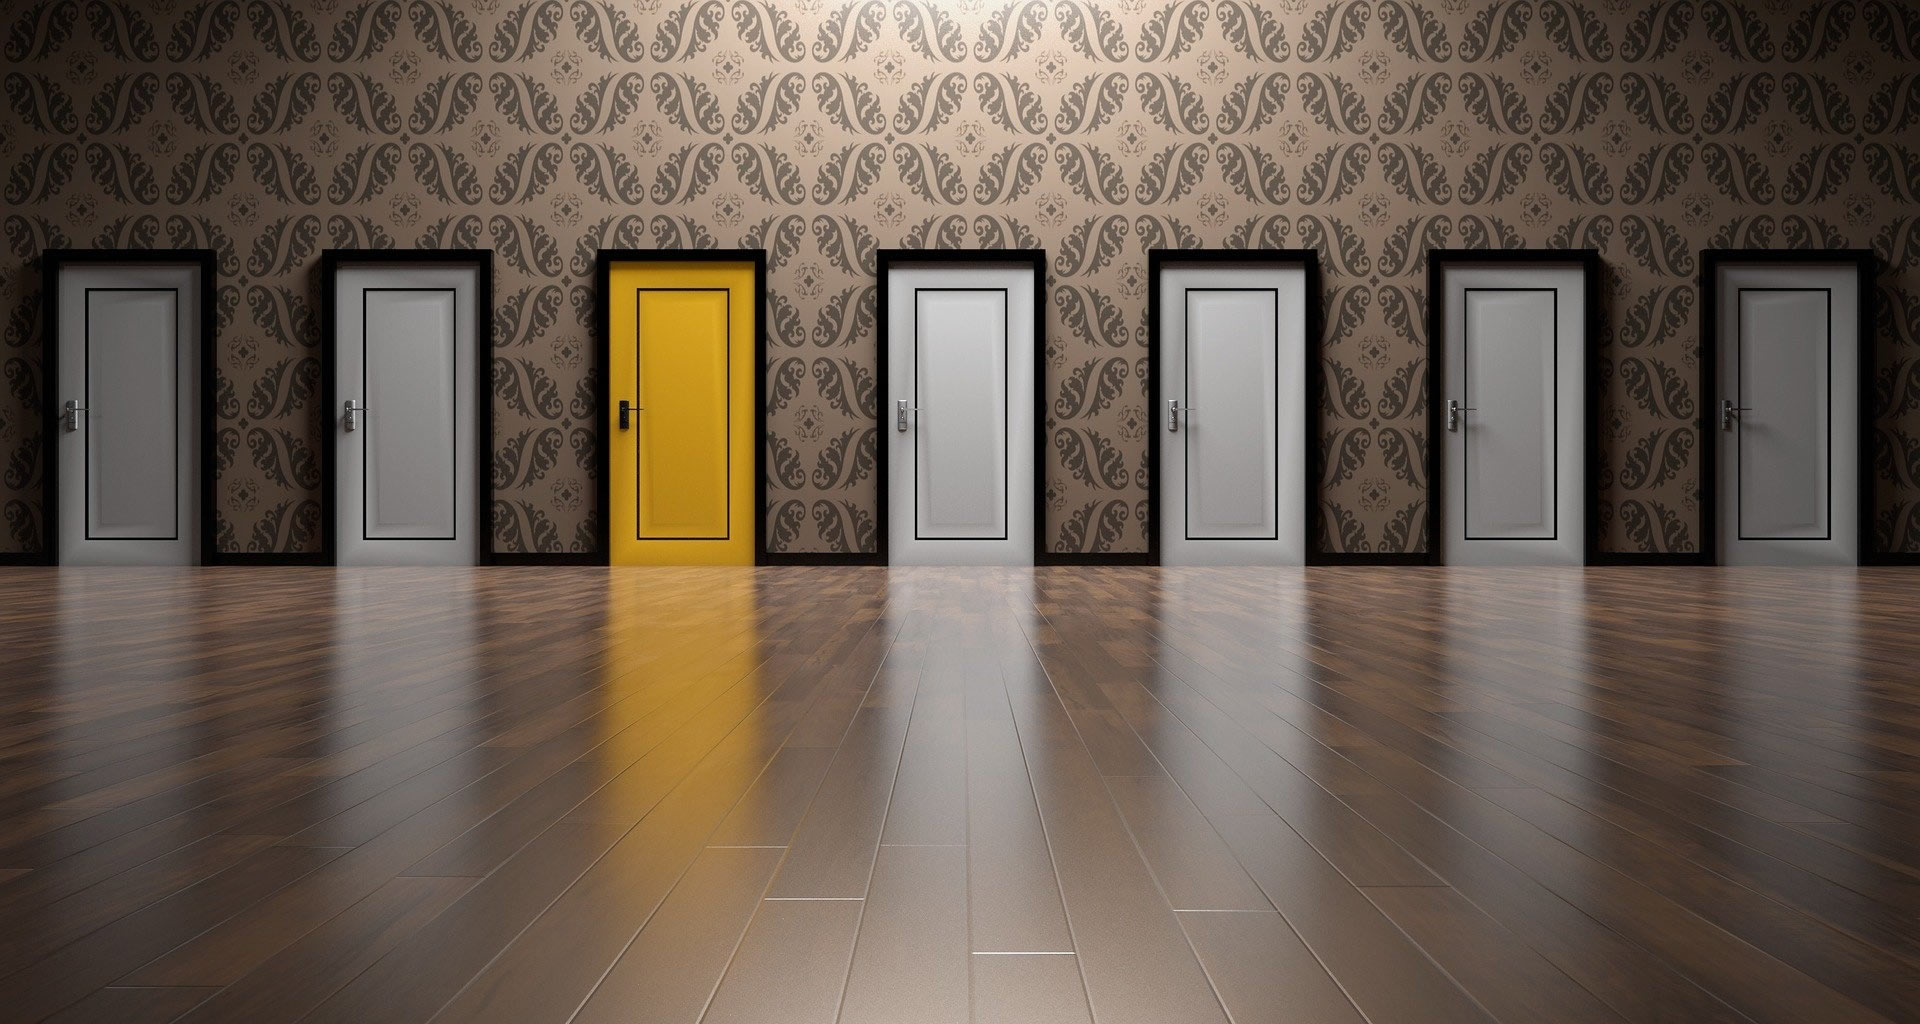 Image of doors, one is yellow